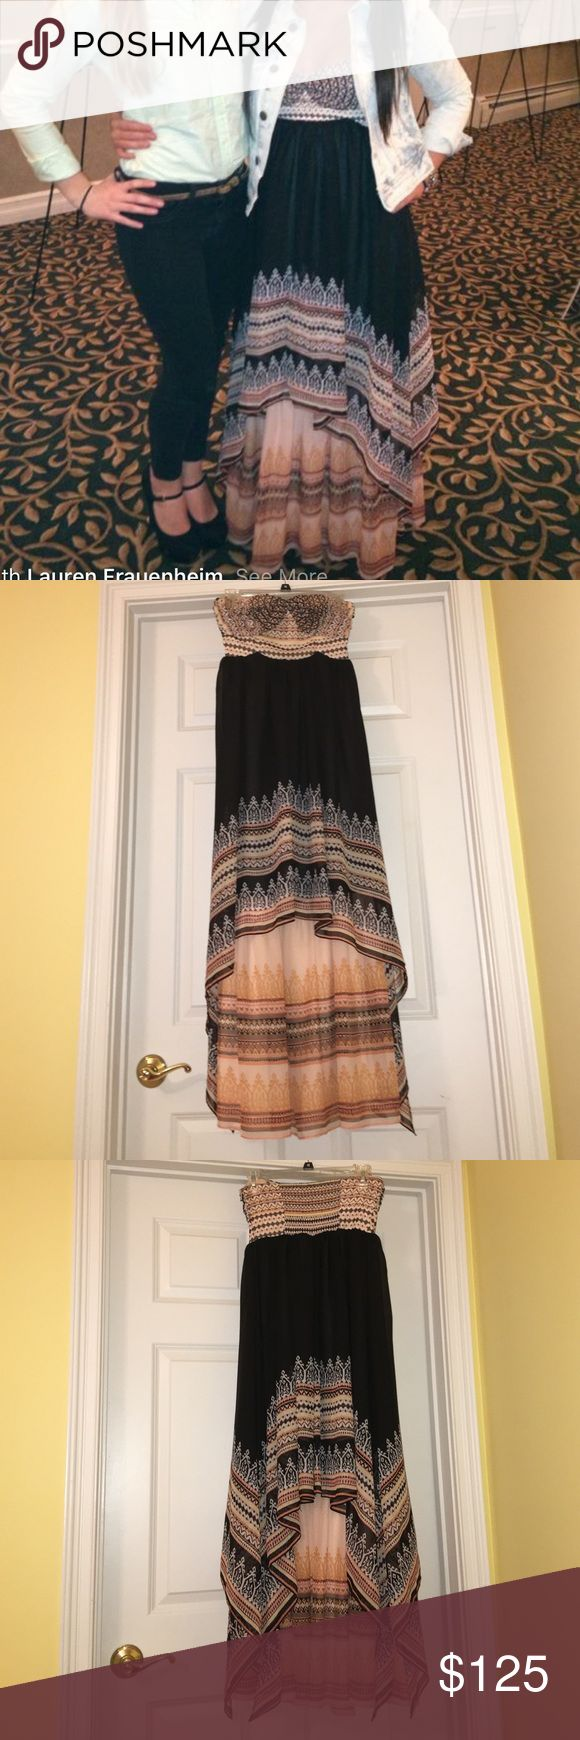 Free people strapless maxi dress worn once Free people strapless maxi dress worn once so versatile and beautiful!! Size xs Free People Dresses Maxi